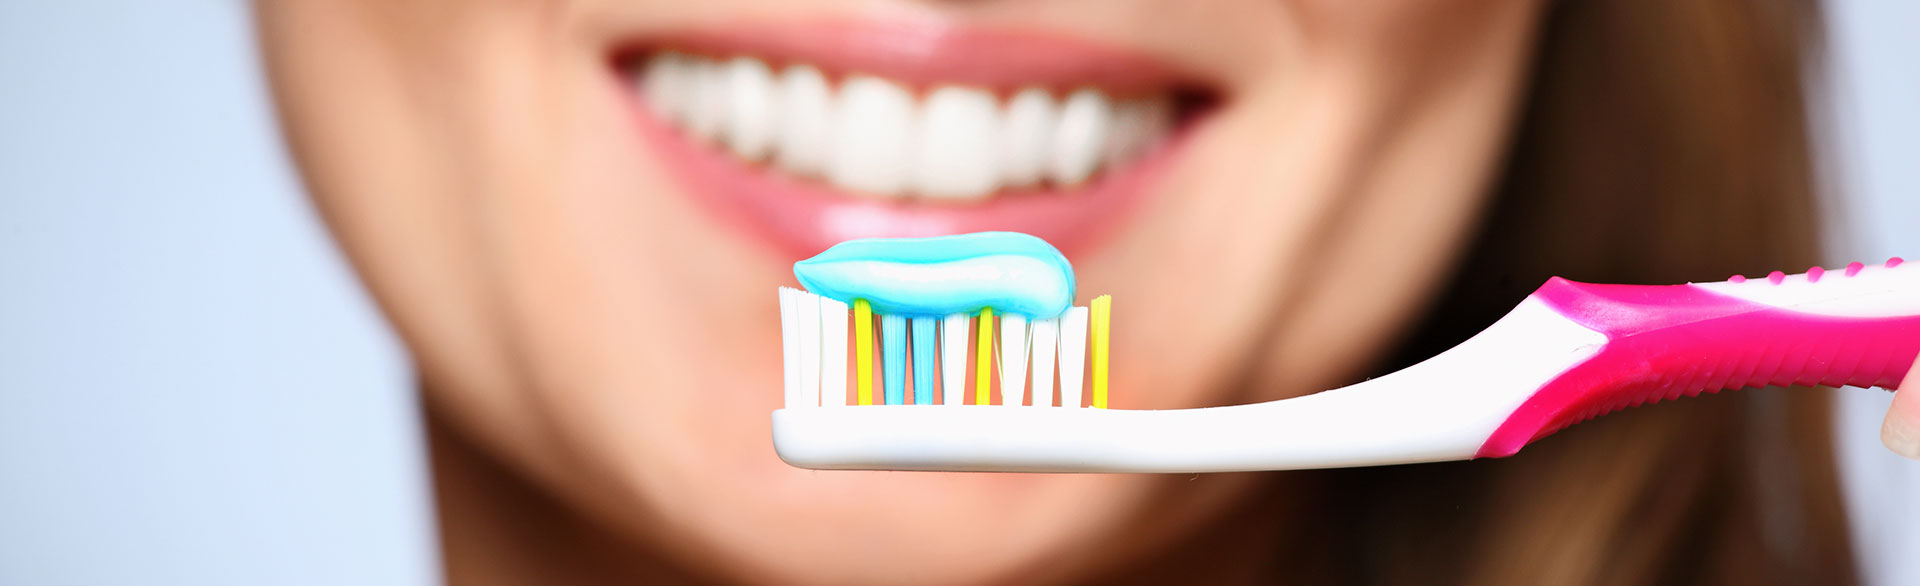 10 Great Dental Hygiene Tips